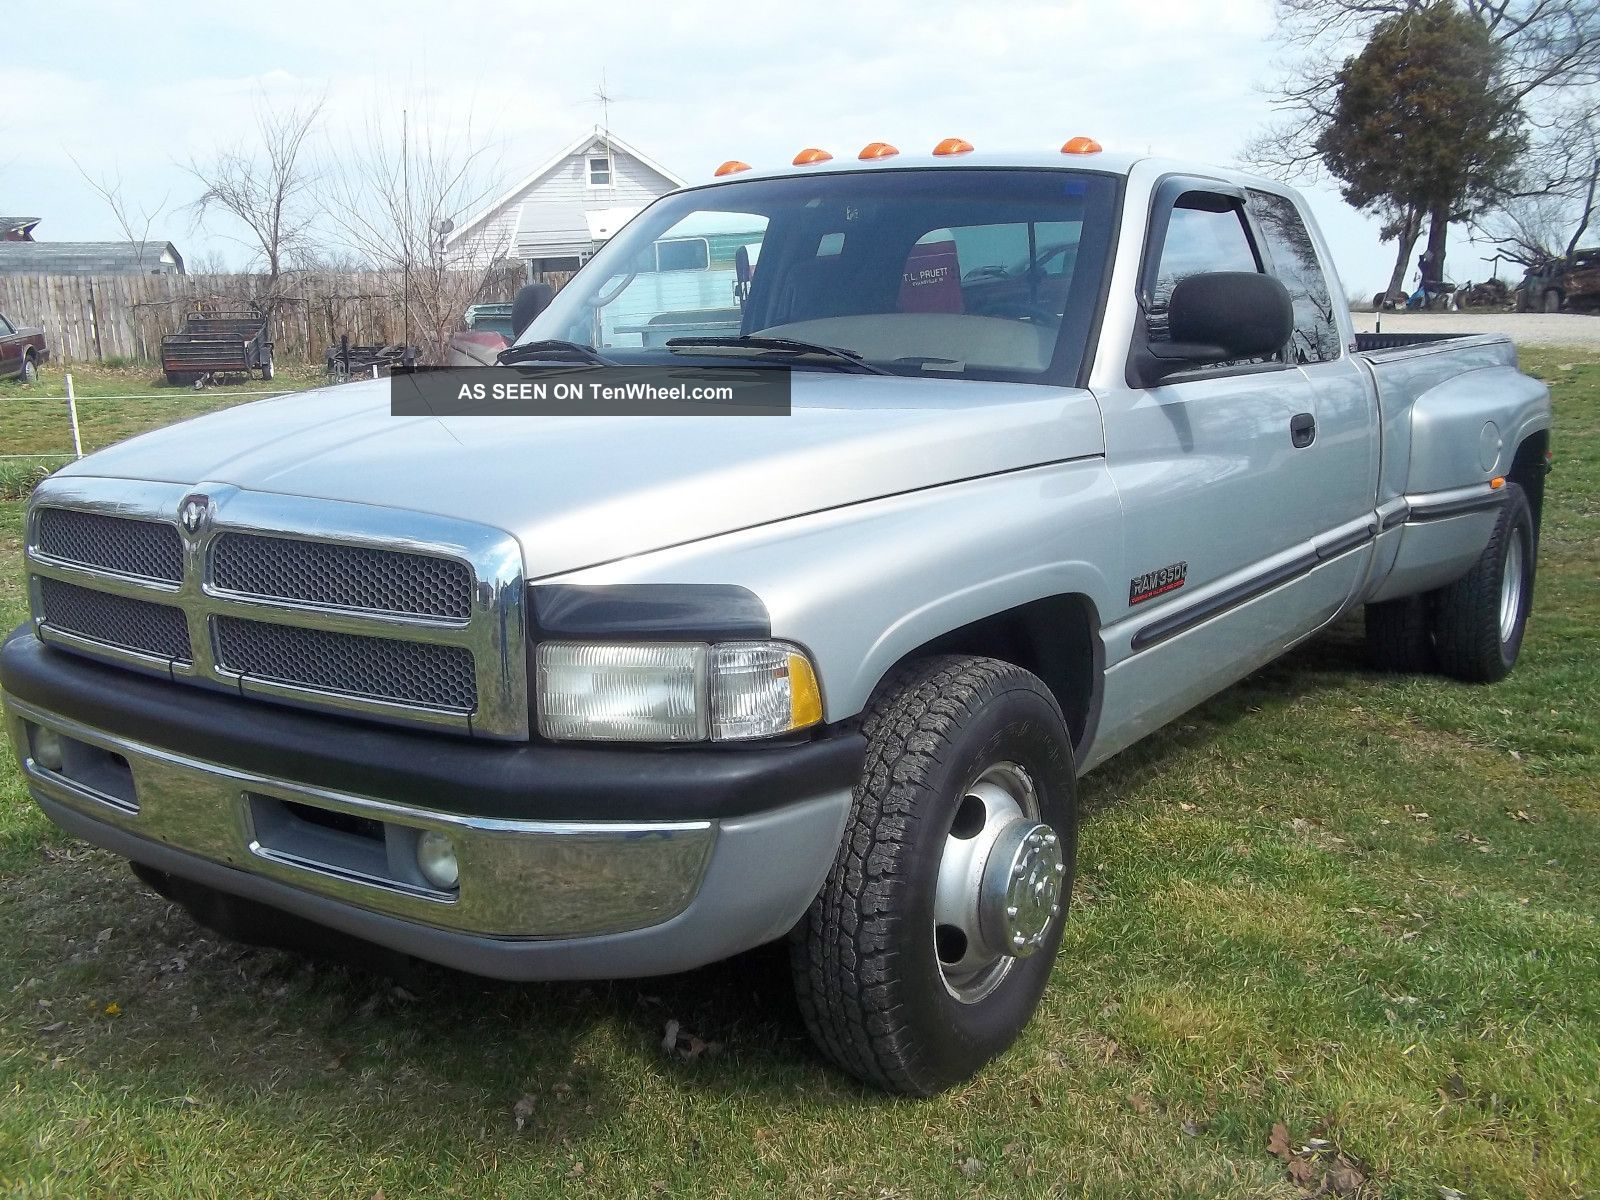 1999 dodge ram 3500 dually turbo diesel 5 9l. Black Bedroom Furniture Sets. Home Design Ideas